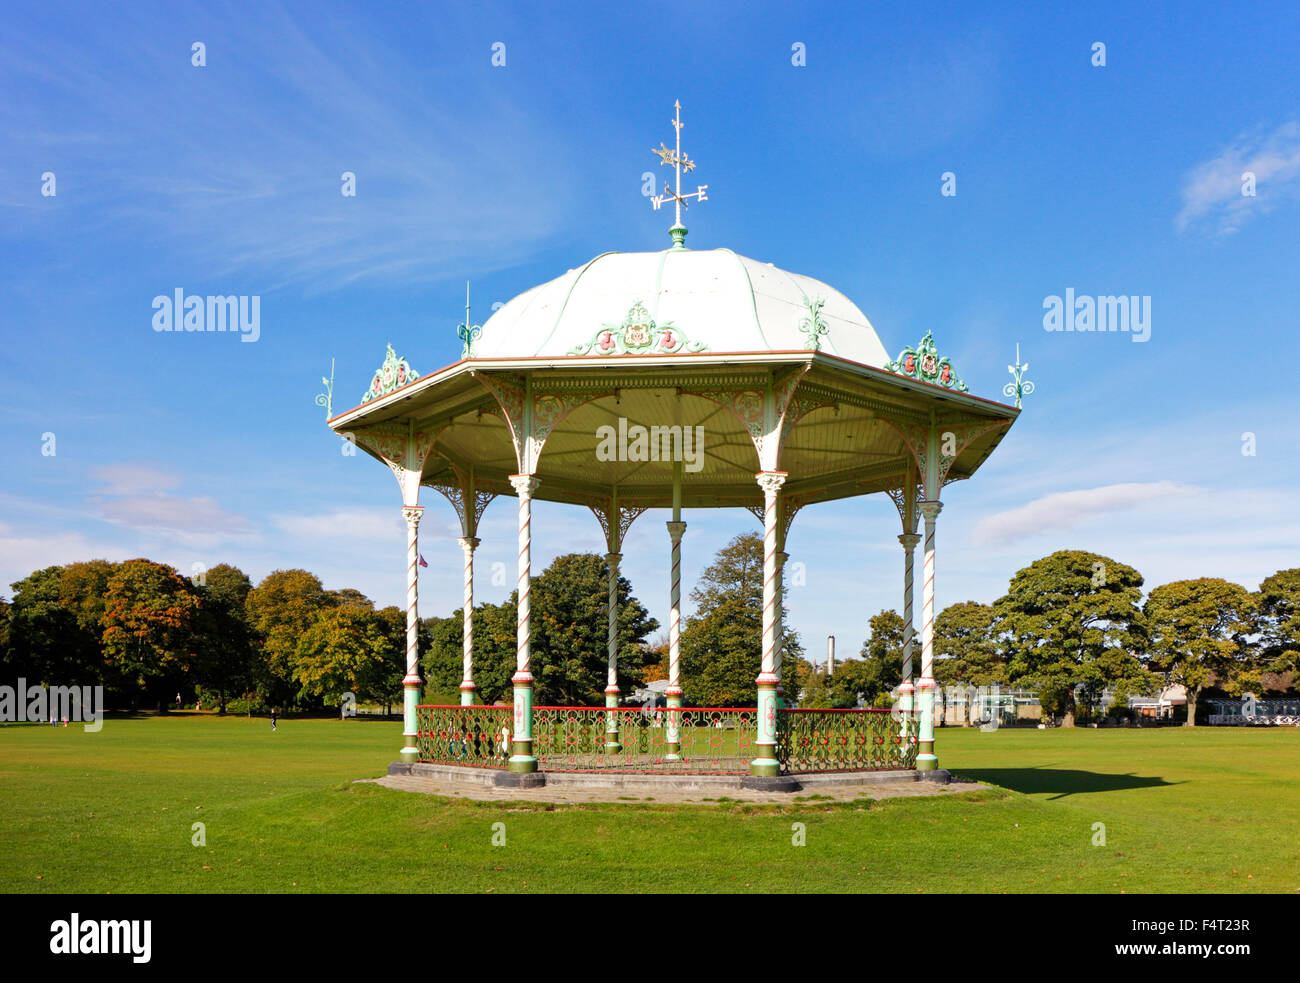 A view of the bandstand in Duthie Park, Aberdeen, Aberdeenshire, Scotland, United Kingdom. - Stock Image